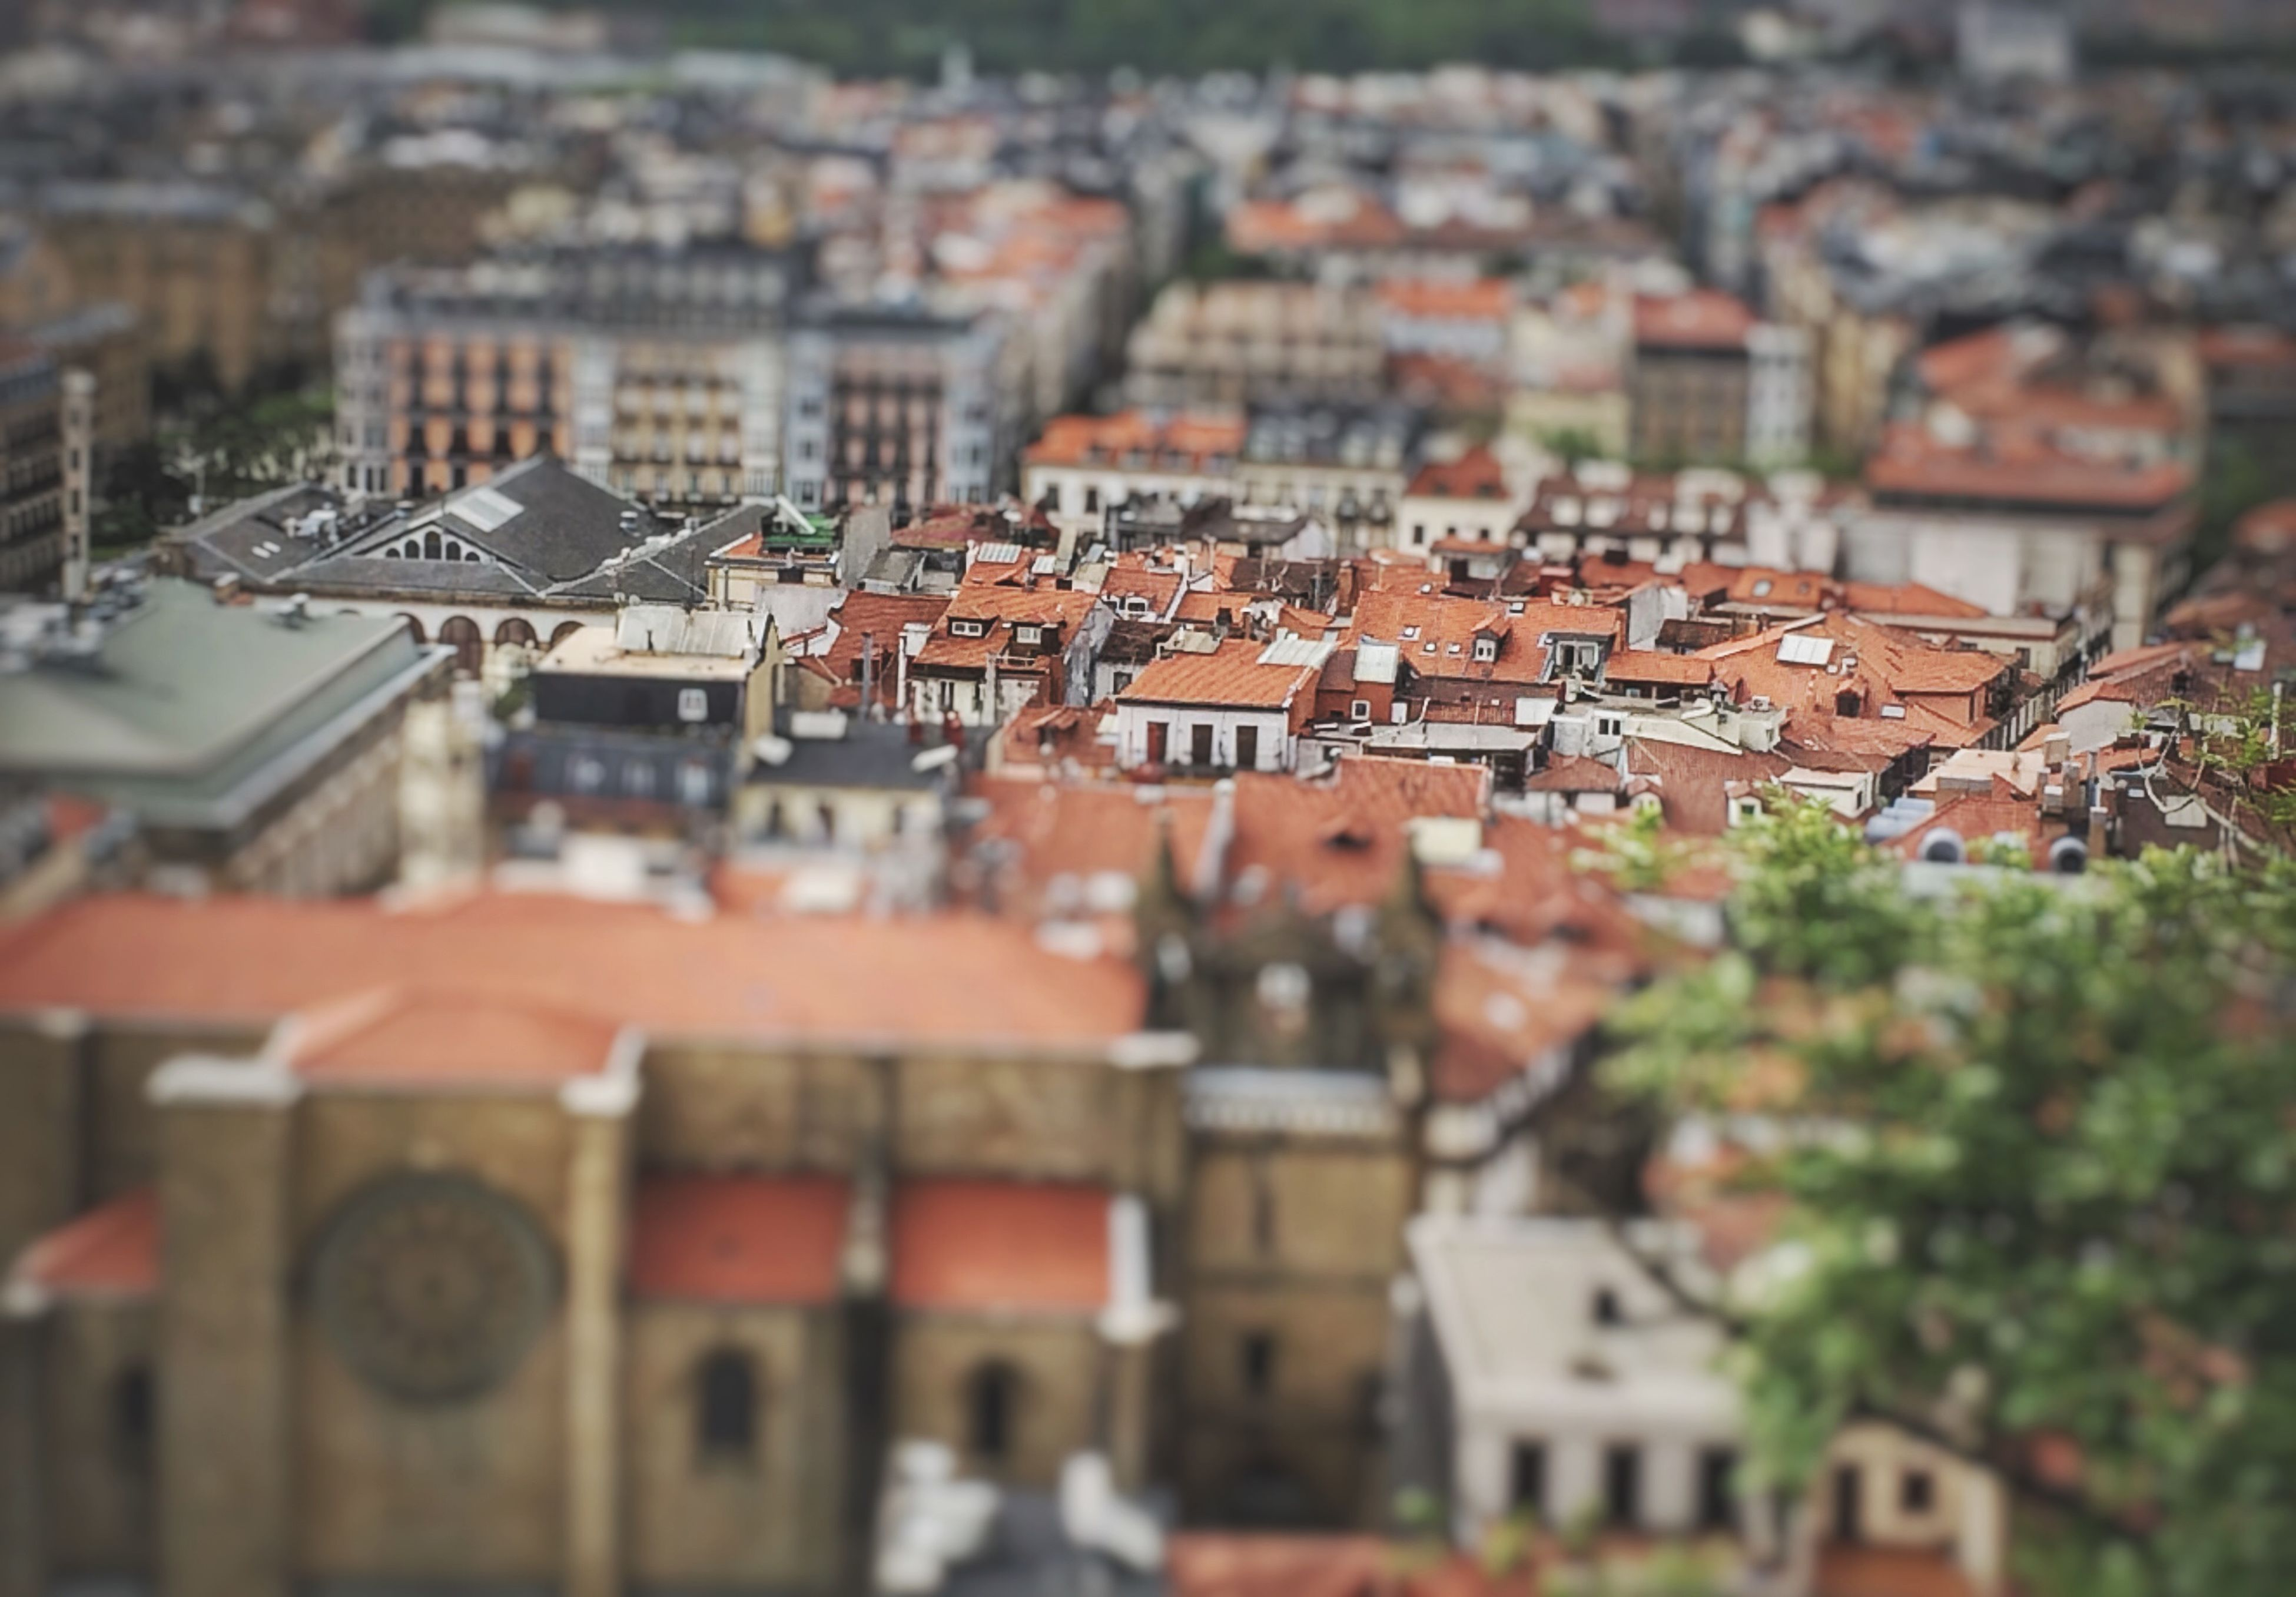 building exterior, architecture, built structure, cityscape, crowded, city, residential structure, roof, residential building, residential district, high angle view, house, selective focus, town, day, townscape, outdoors, community, focus on foreground, no people